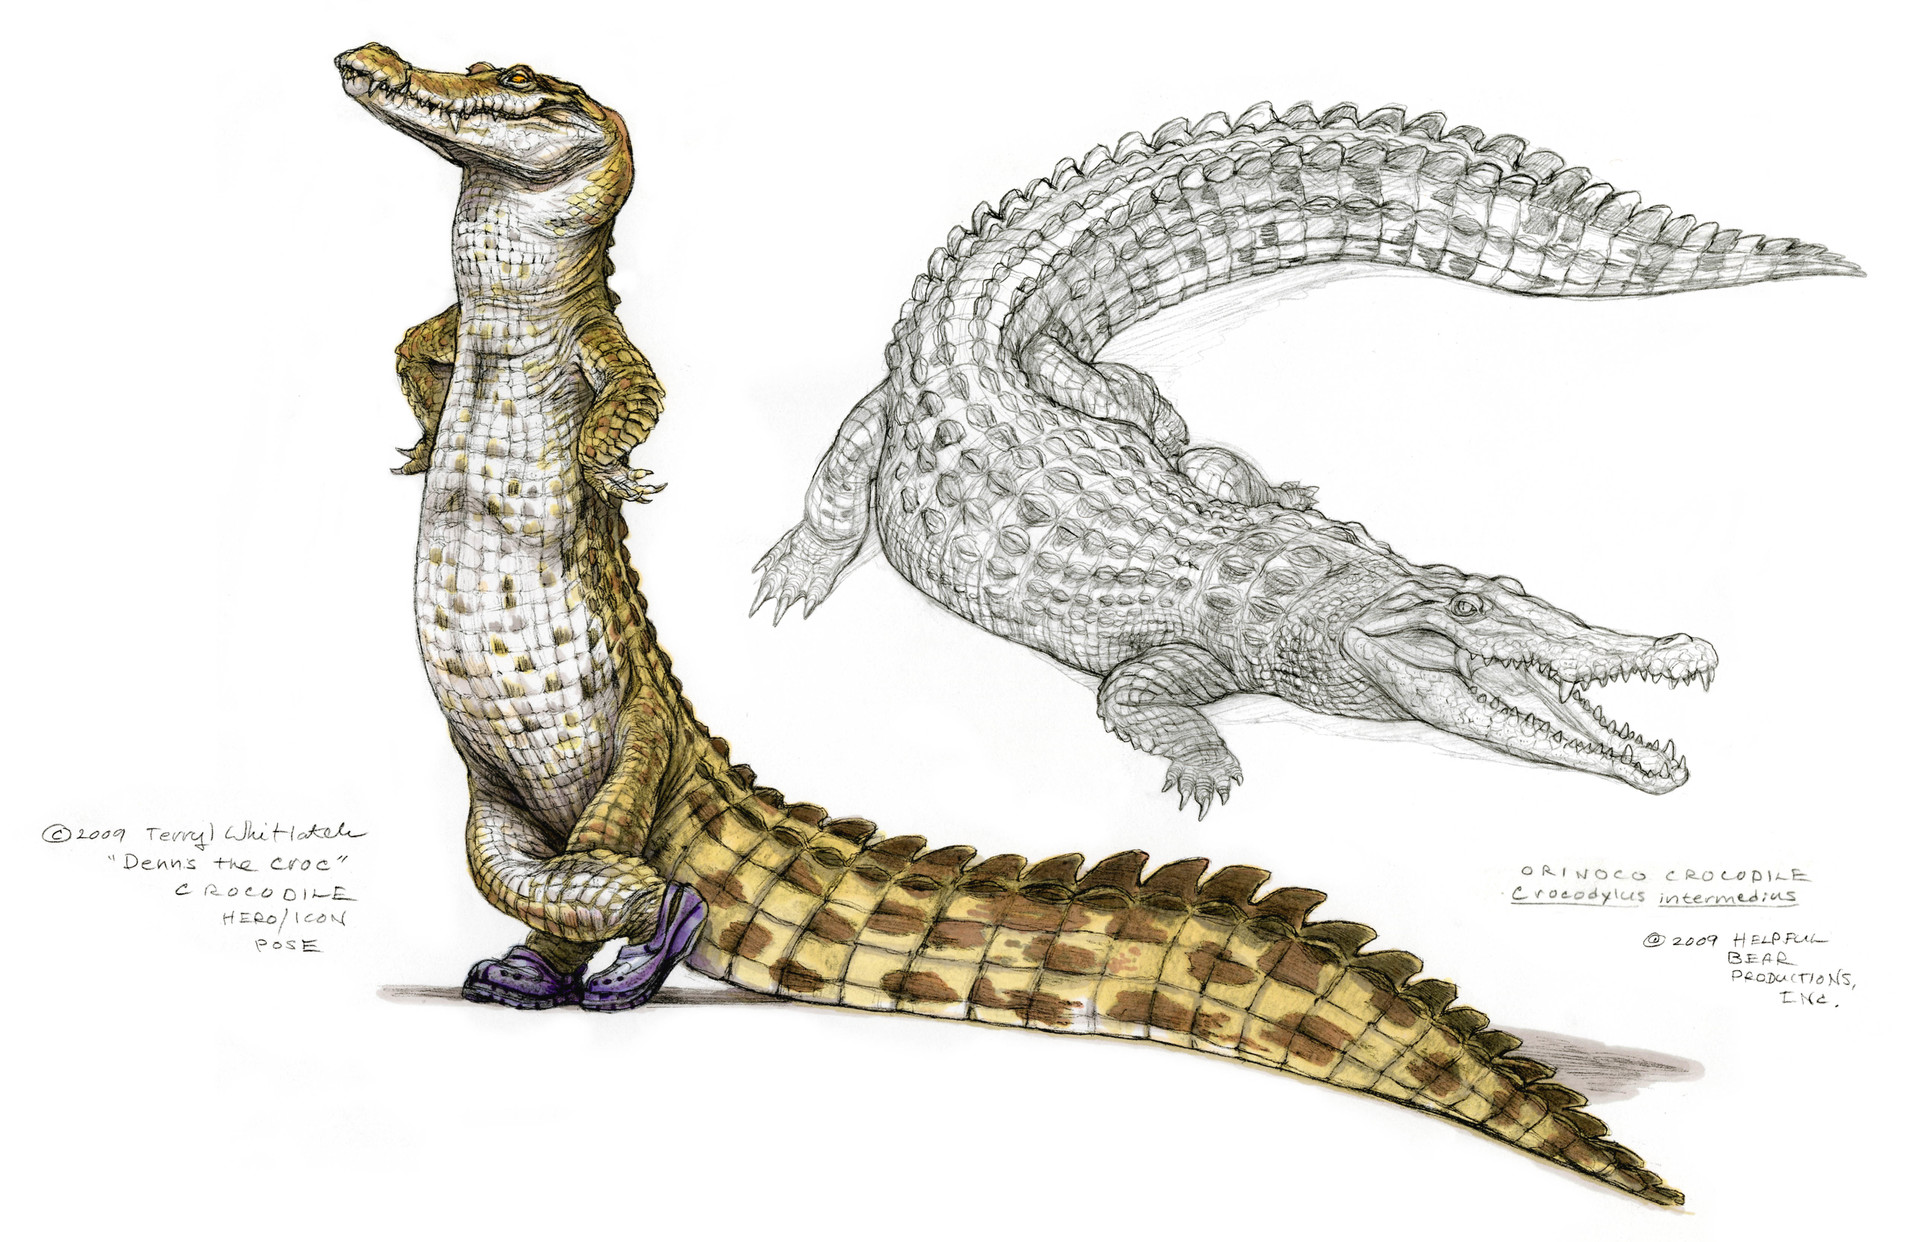 A croc wearing Crocs. Visual humor is a recurring feature of Terryl's work.